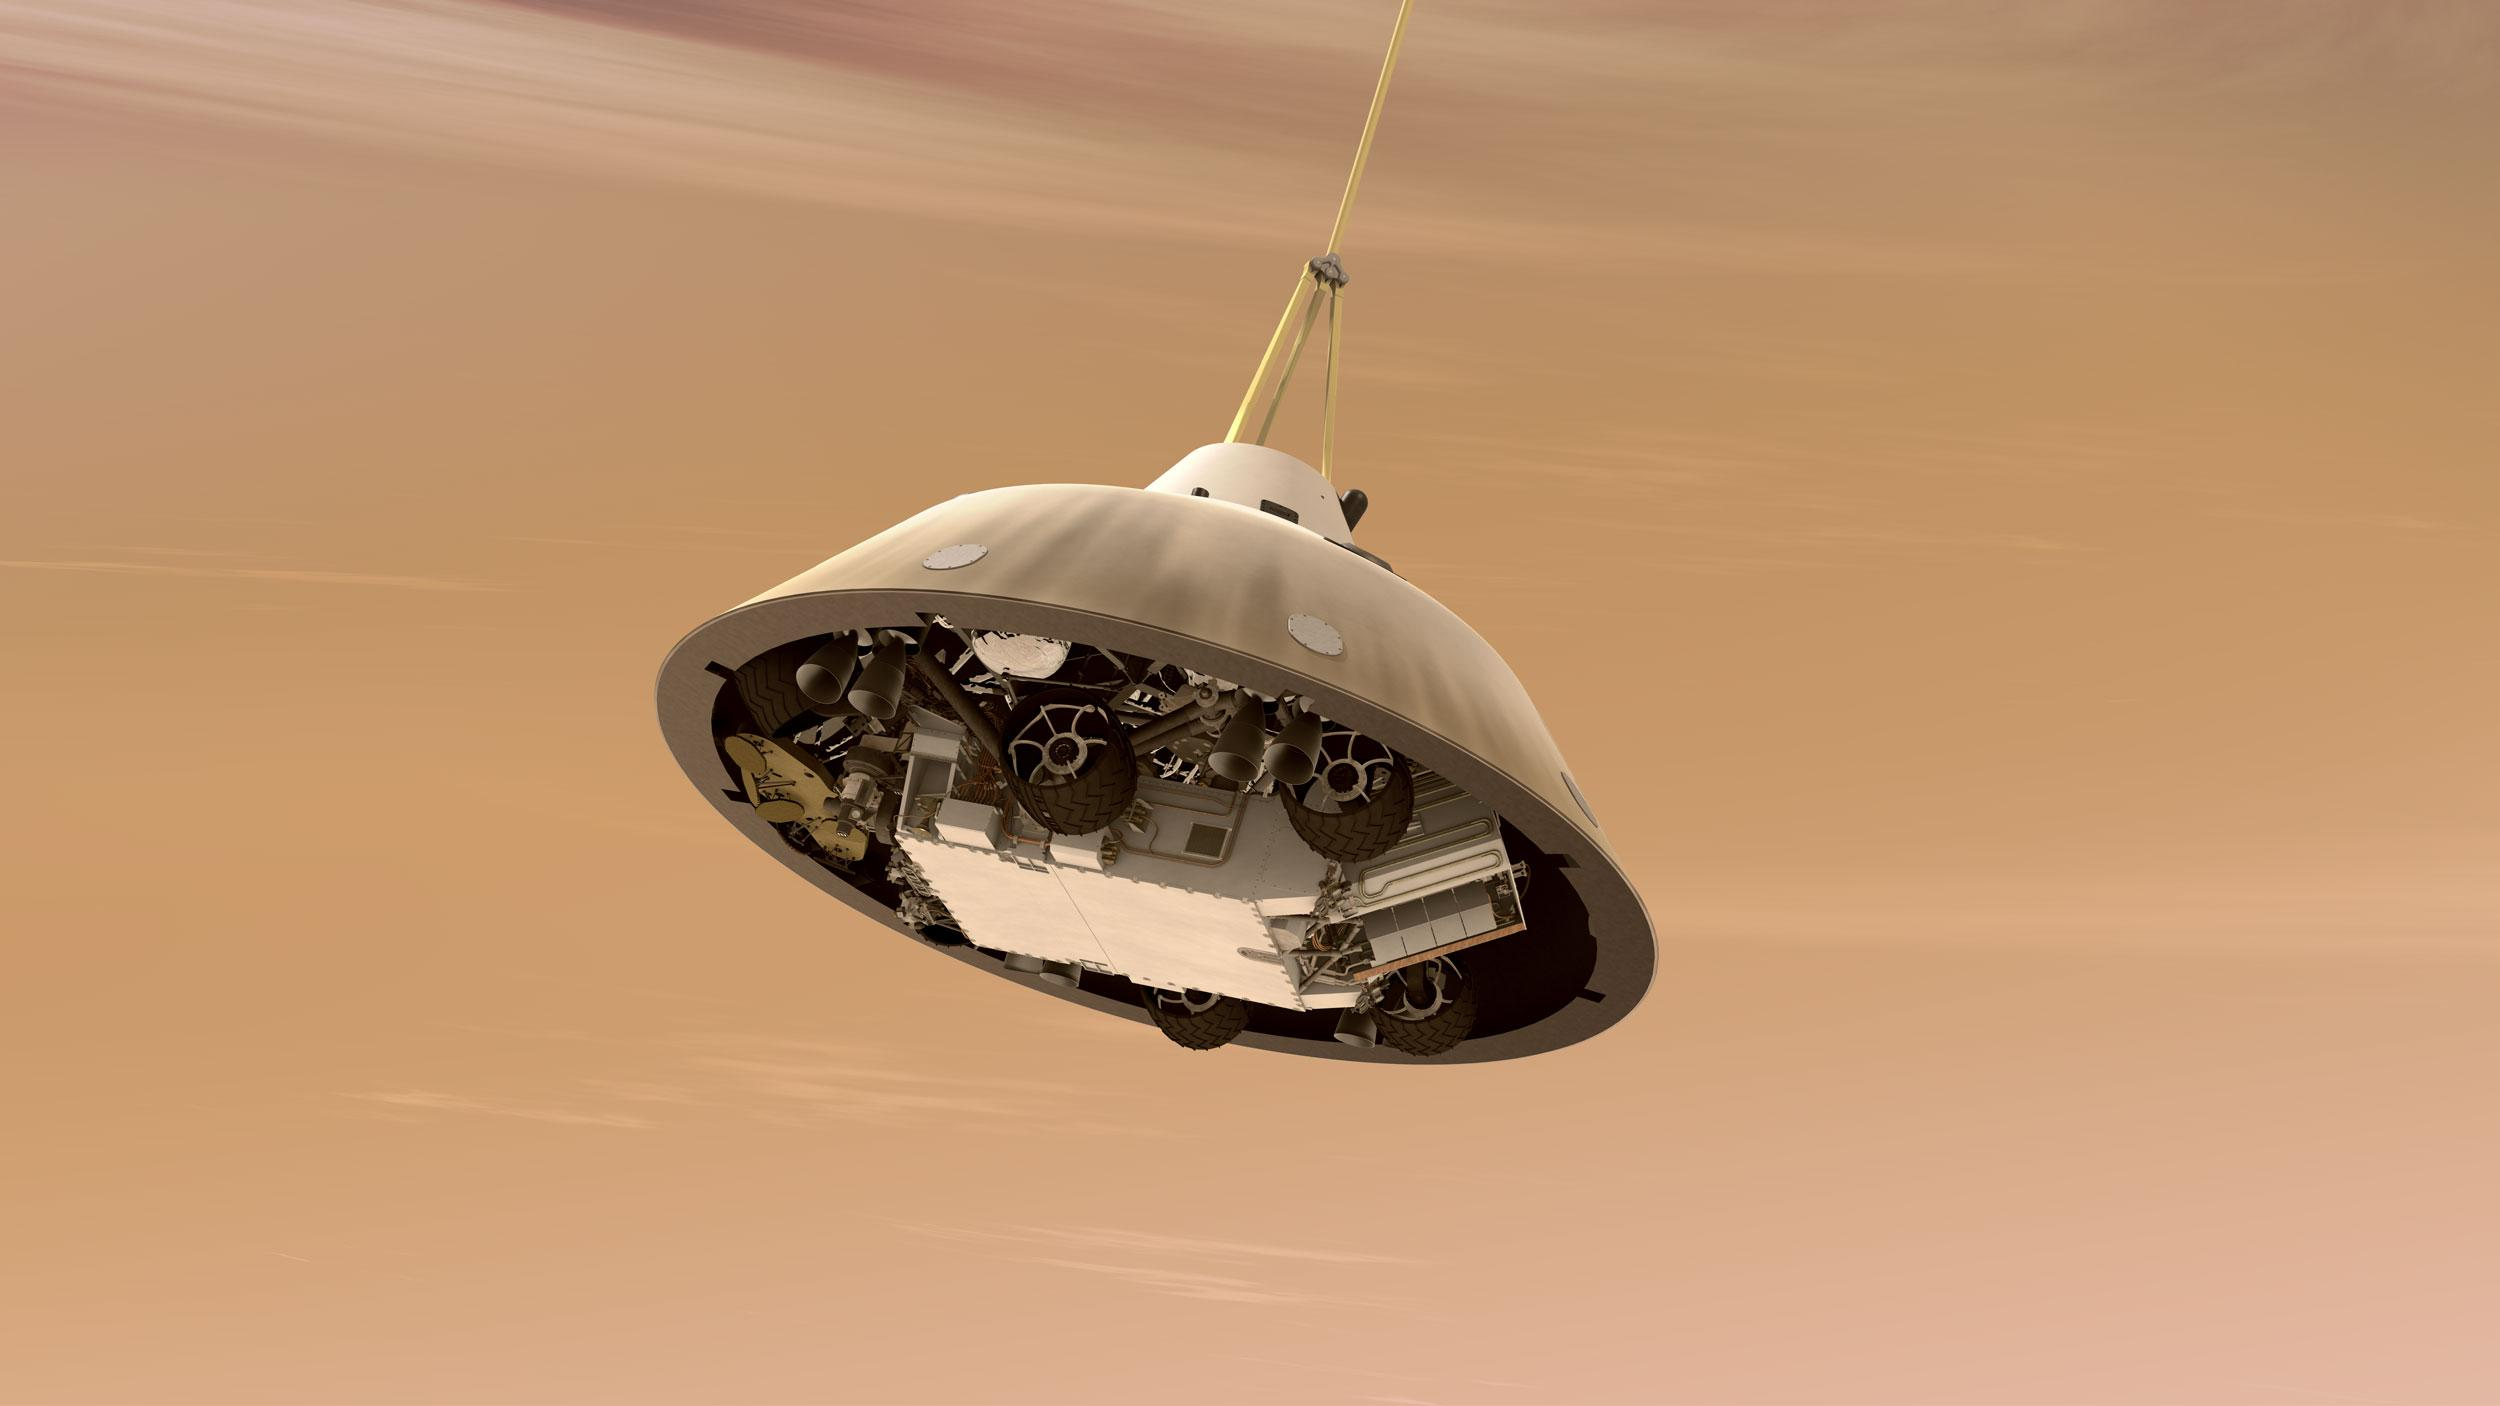 With the heat shield jettisoned, the rover can be seen tucked into the backshell of the spacecraft.